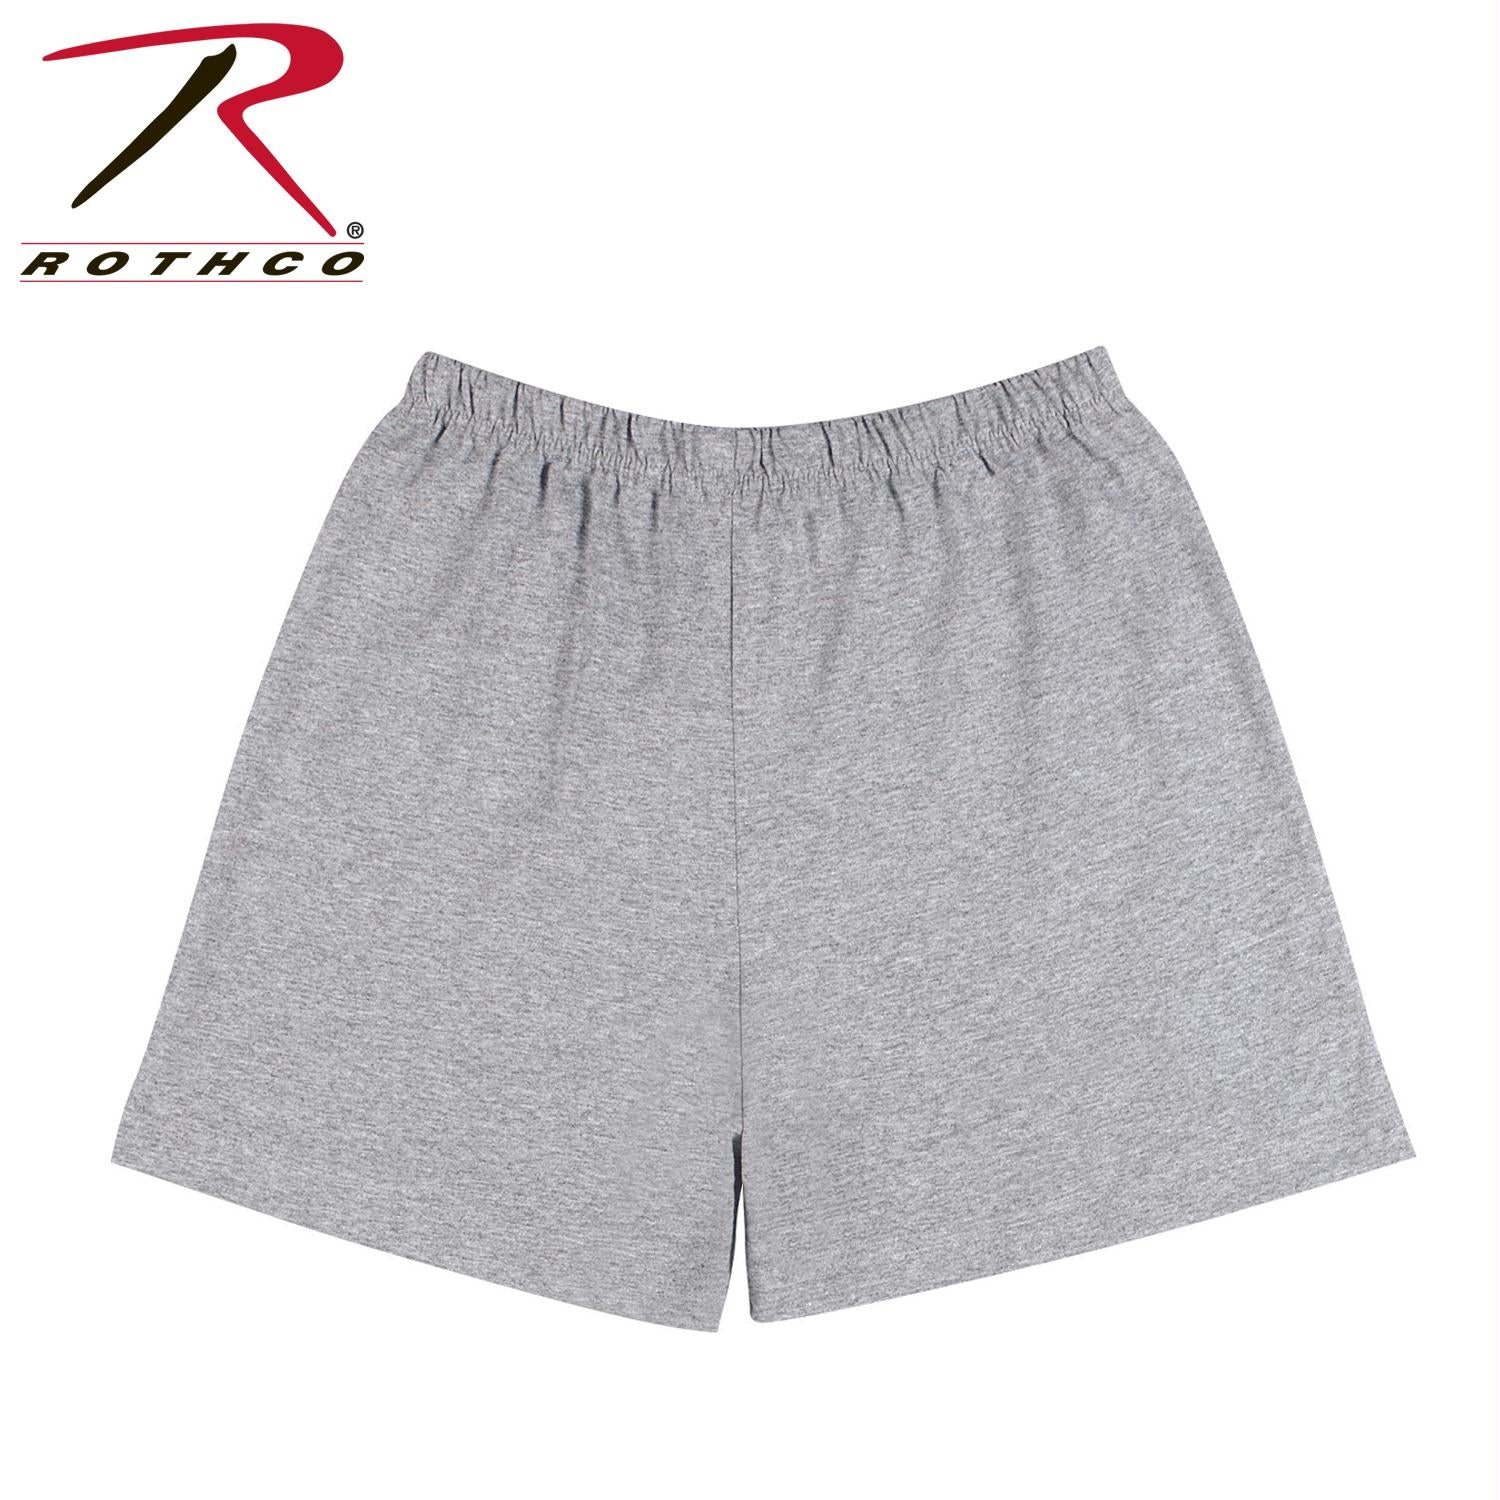 Rothco Classic Physical Training Shorts - L